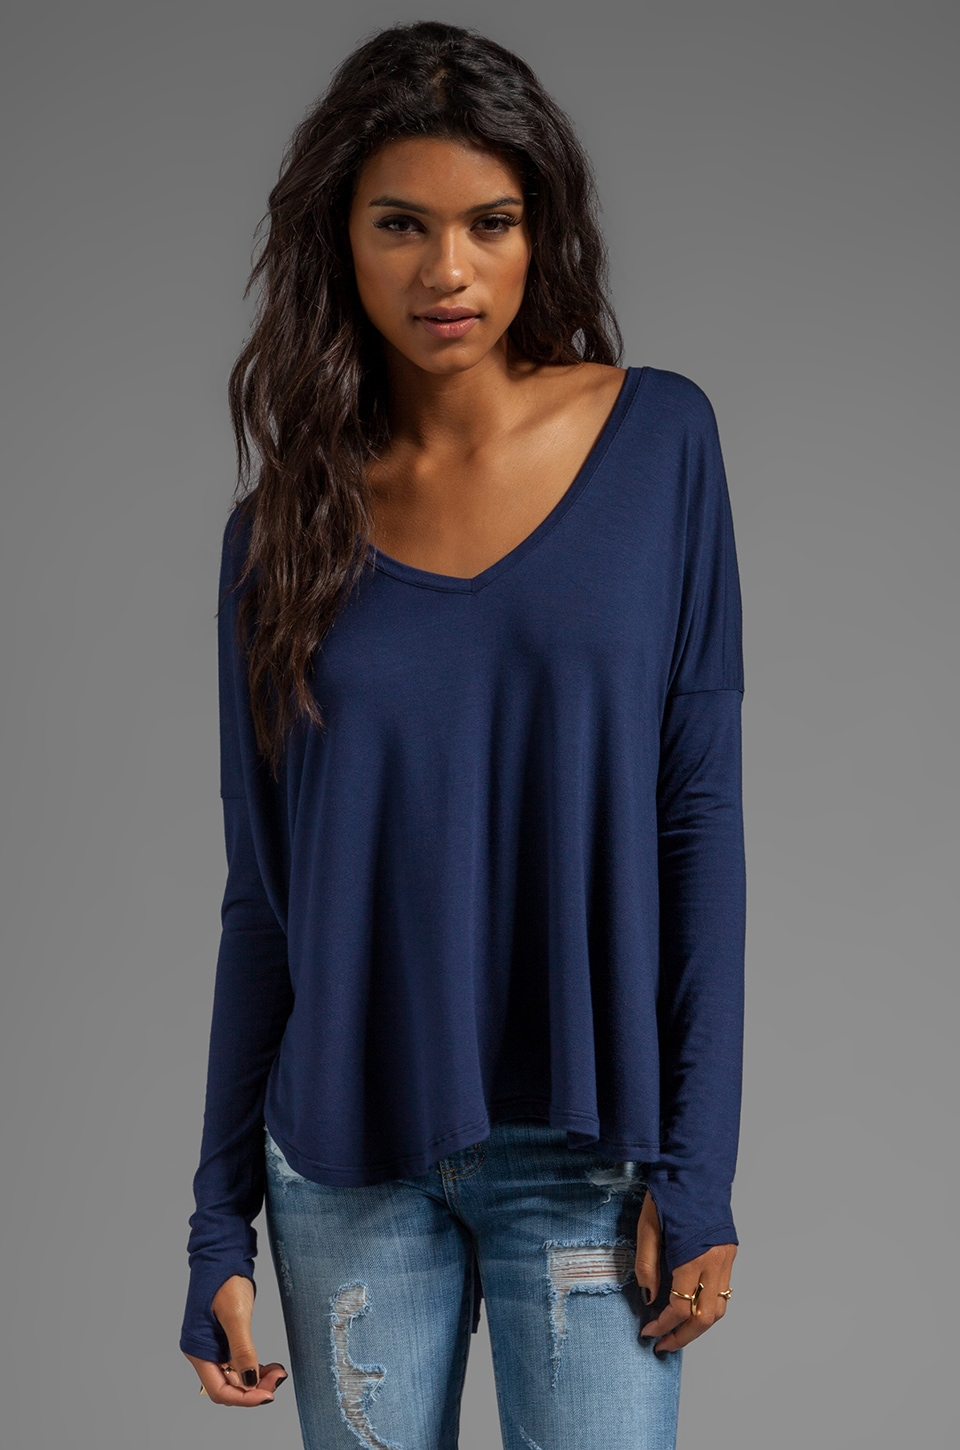 Feel the Piece Robin Top in Navy